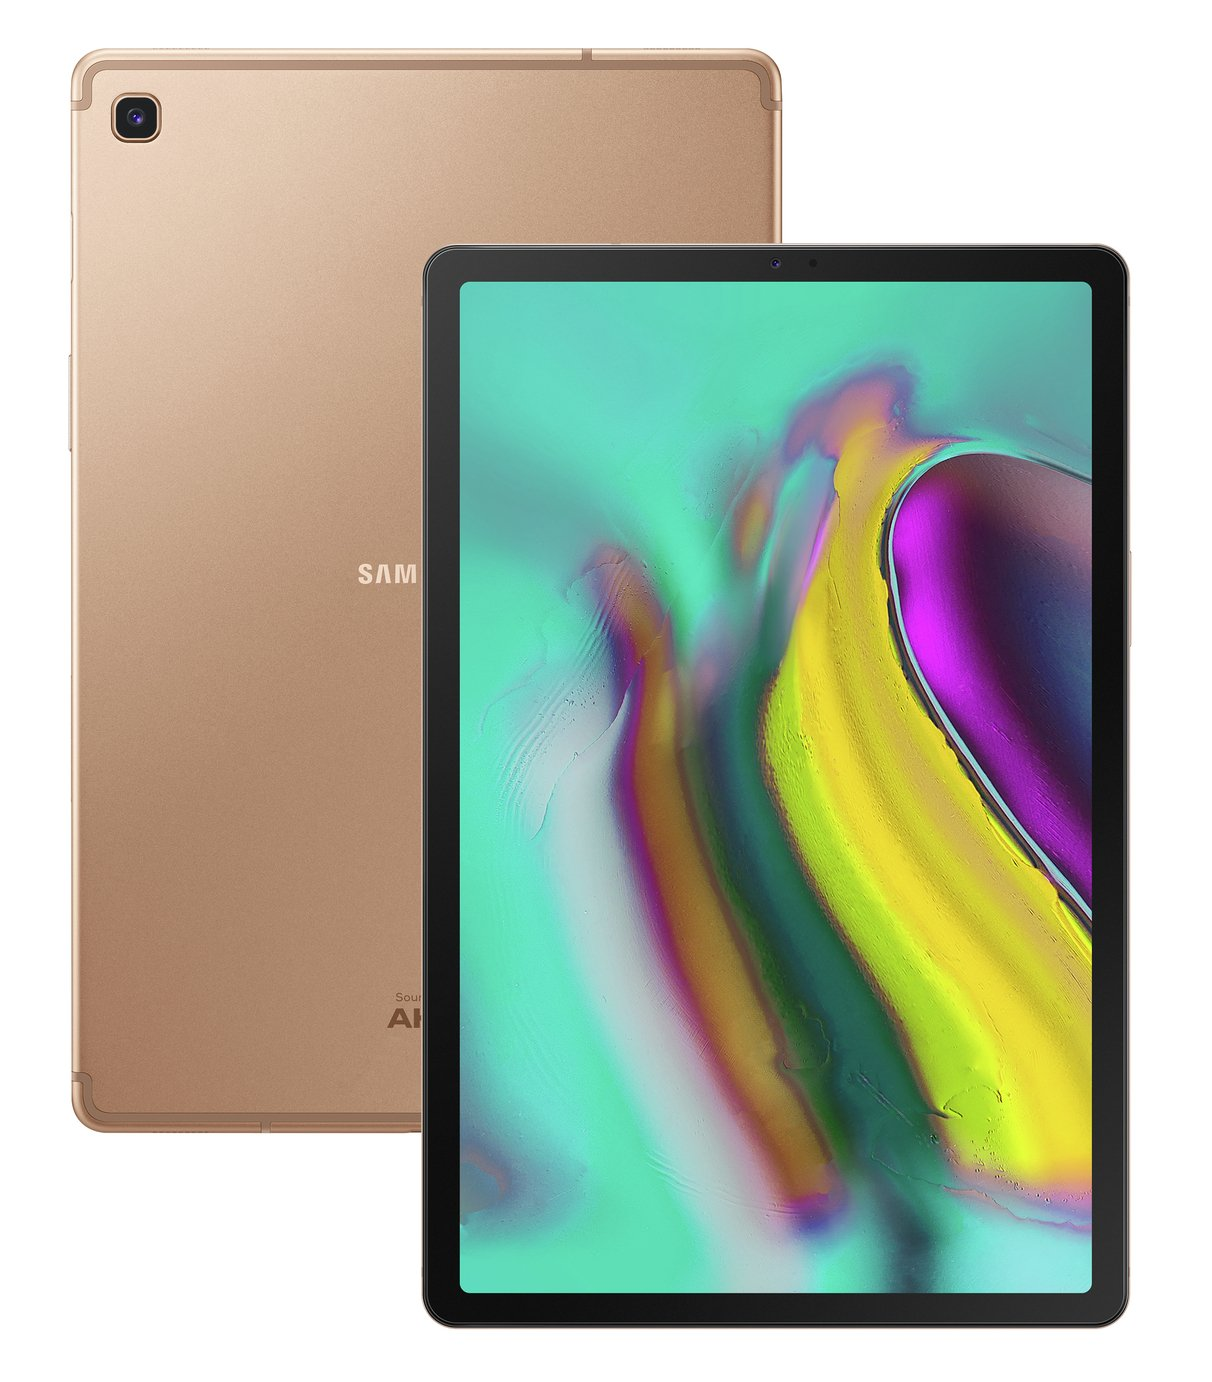 Samsung Tab S5e 10.5in 64GB Wi-Fi Cellular Tablet - Gold